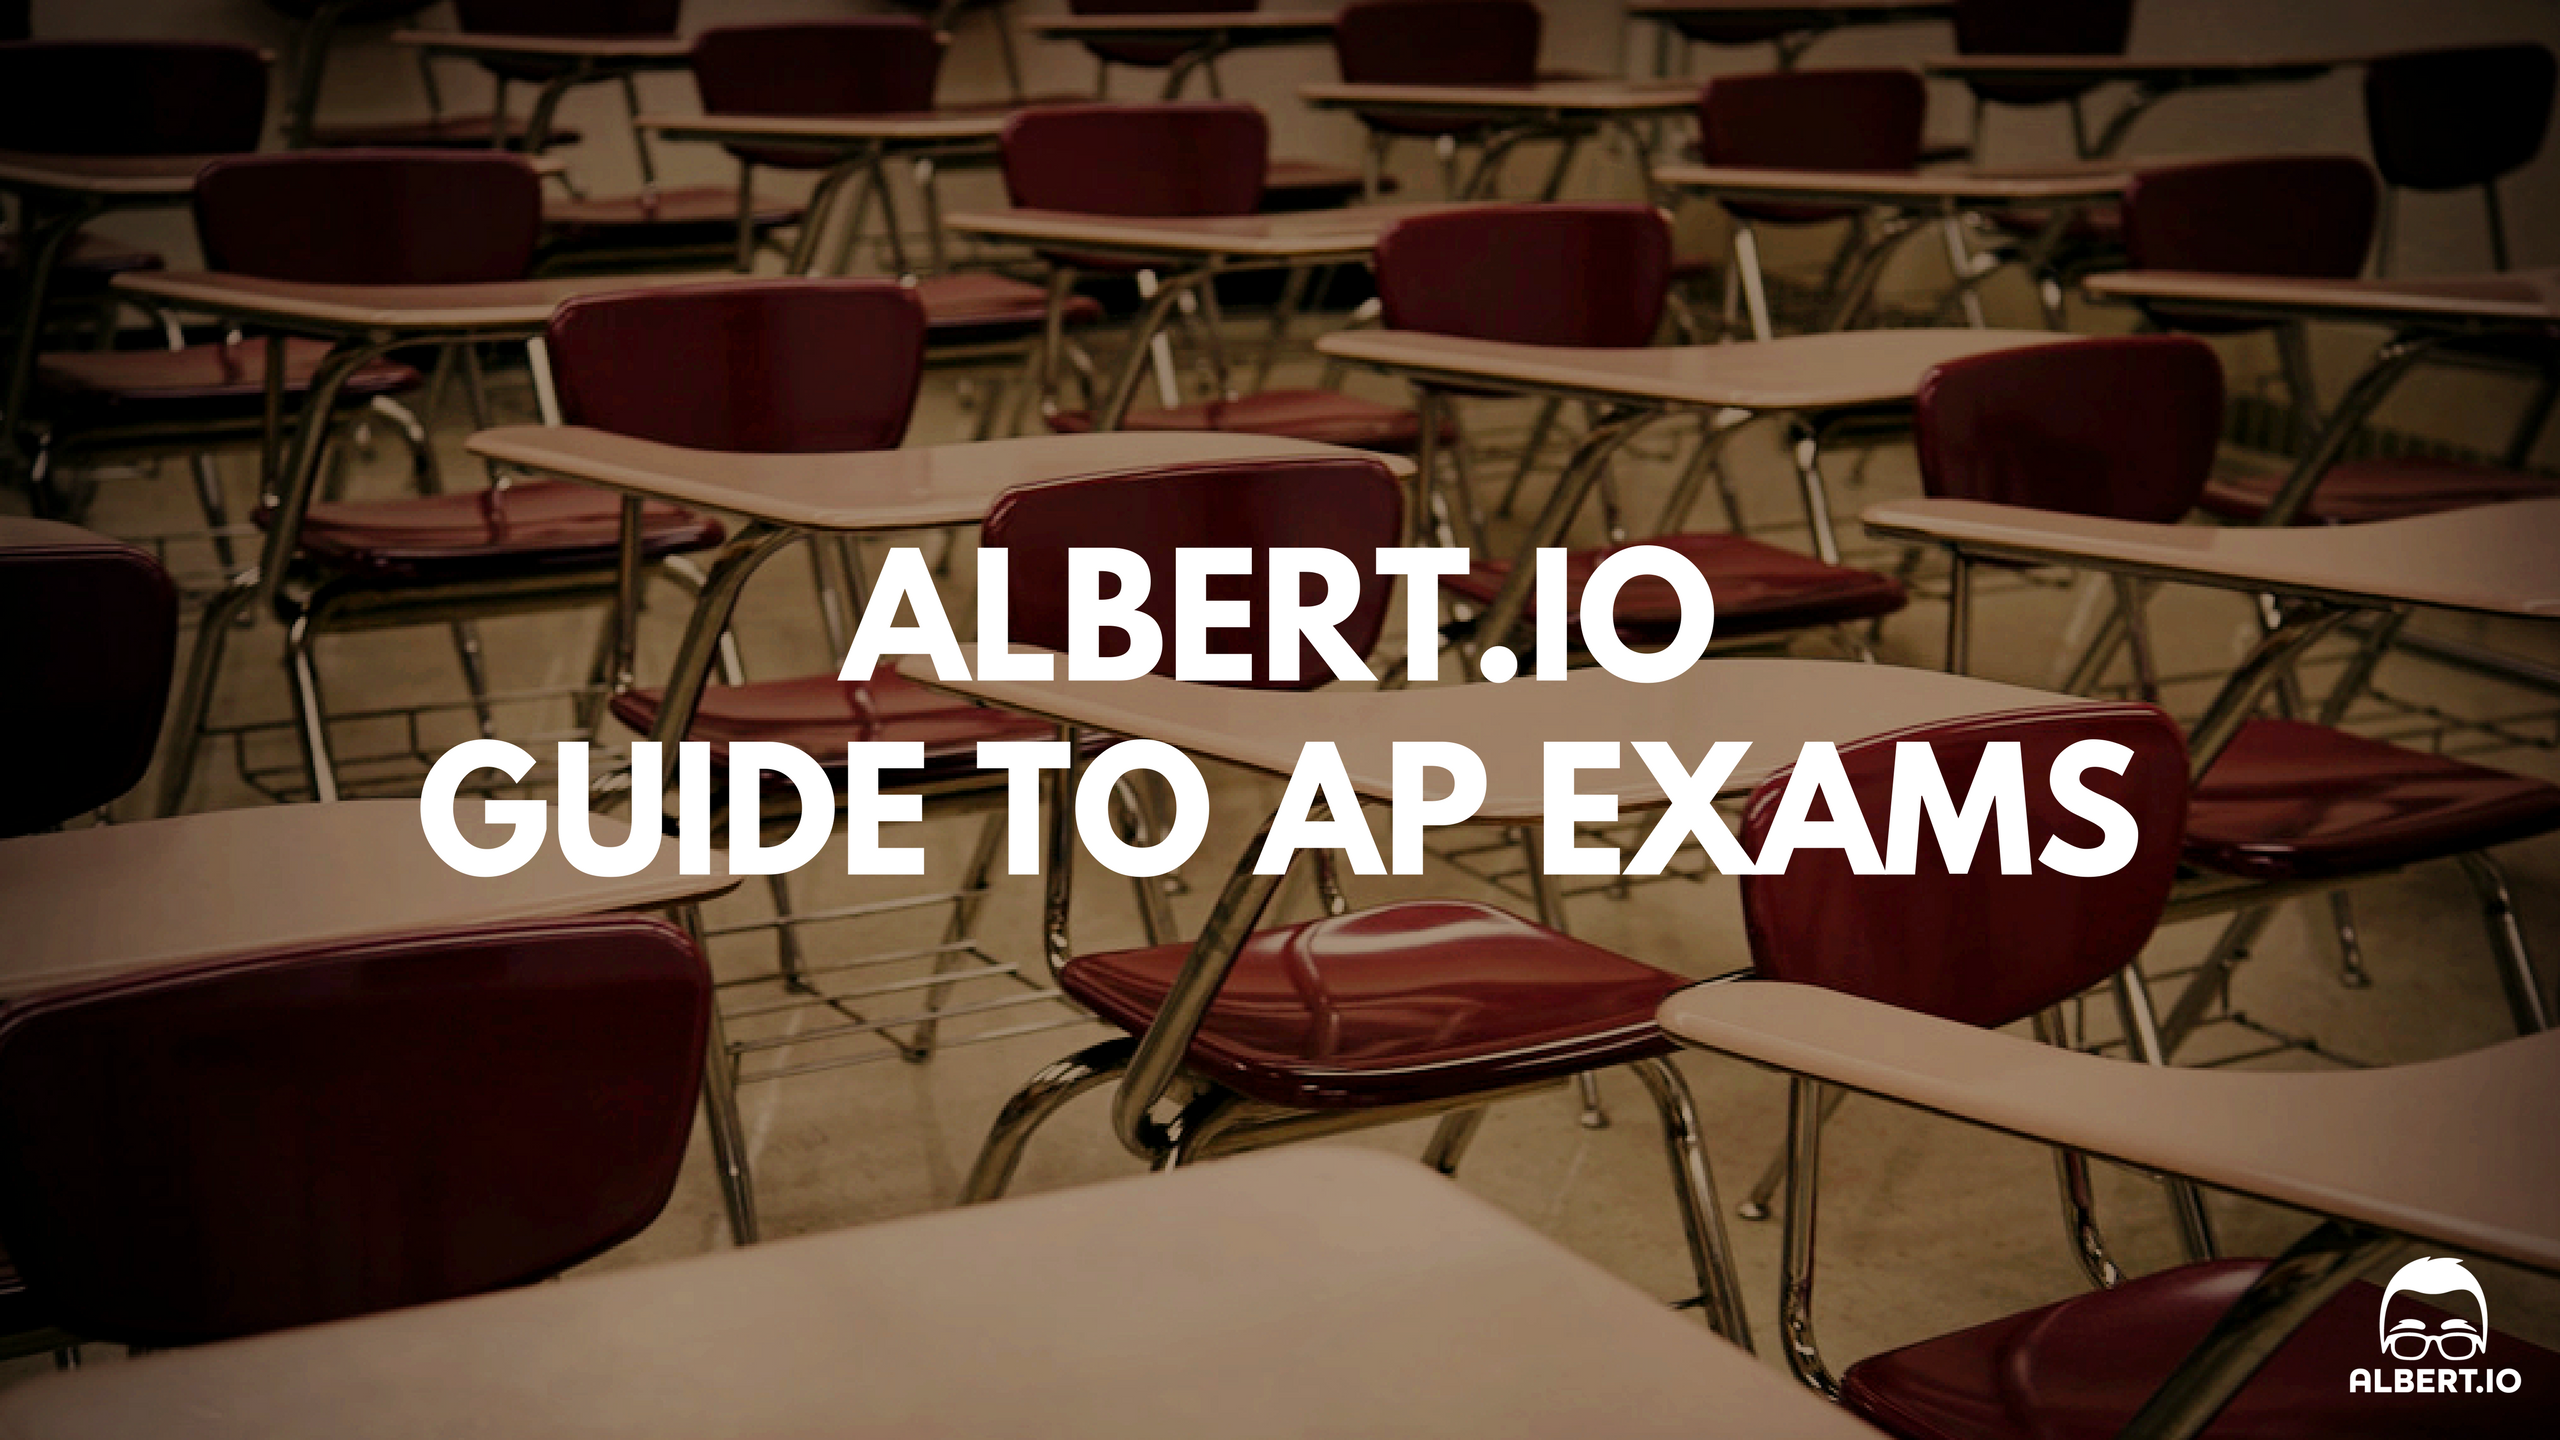 Guide to AP Exams